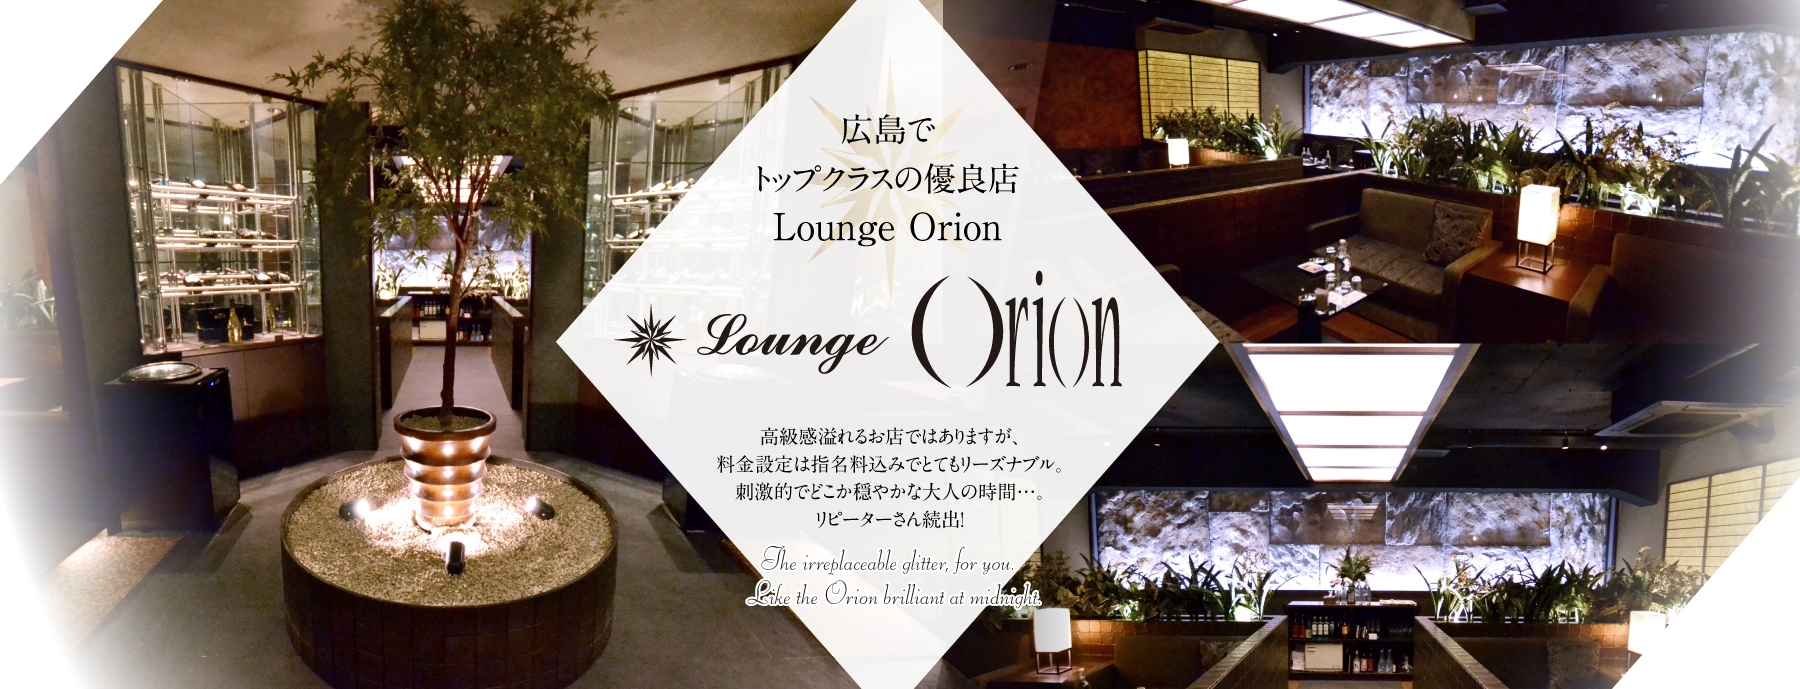 Lounge Orion 〜オリオン〜